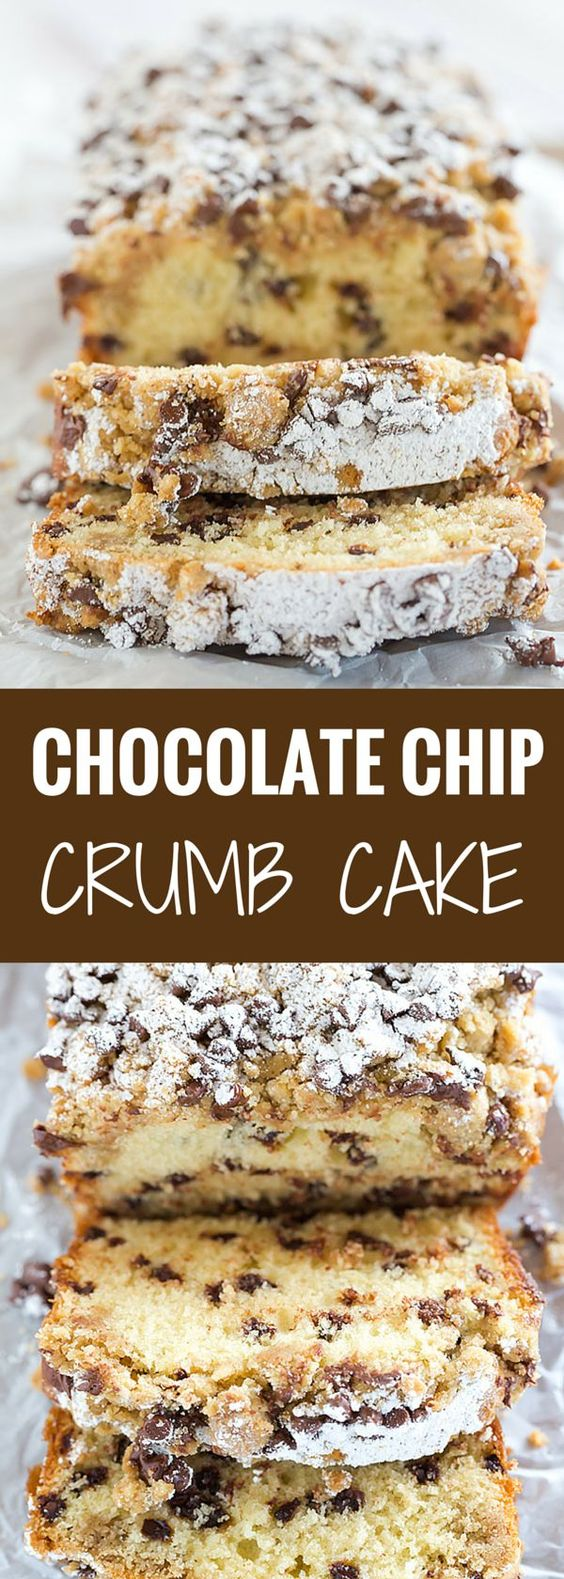 Chocolate Chip Crumb Cake Loaf Recipe via Brown Eyed Baker - This chocolate chip crumb cake is unbelievably tender, loaded with chocolate chips and topped with the most amazing crumb topping! #dessertbreads #neighborgifts #homemadegifts #foodgifts #breadrecipes #flavoredbreads #sweetbreads #holidaybread #bread #homemadebread #simplebreadrecipes #simplebread #simplerecipes